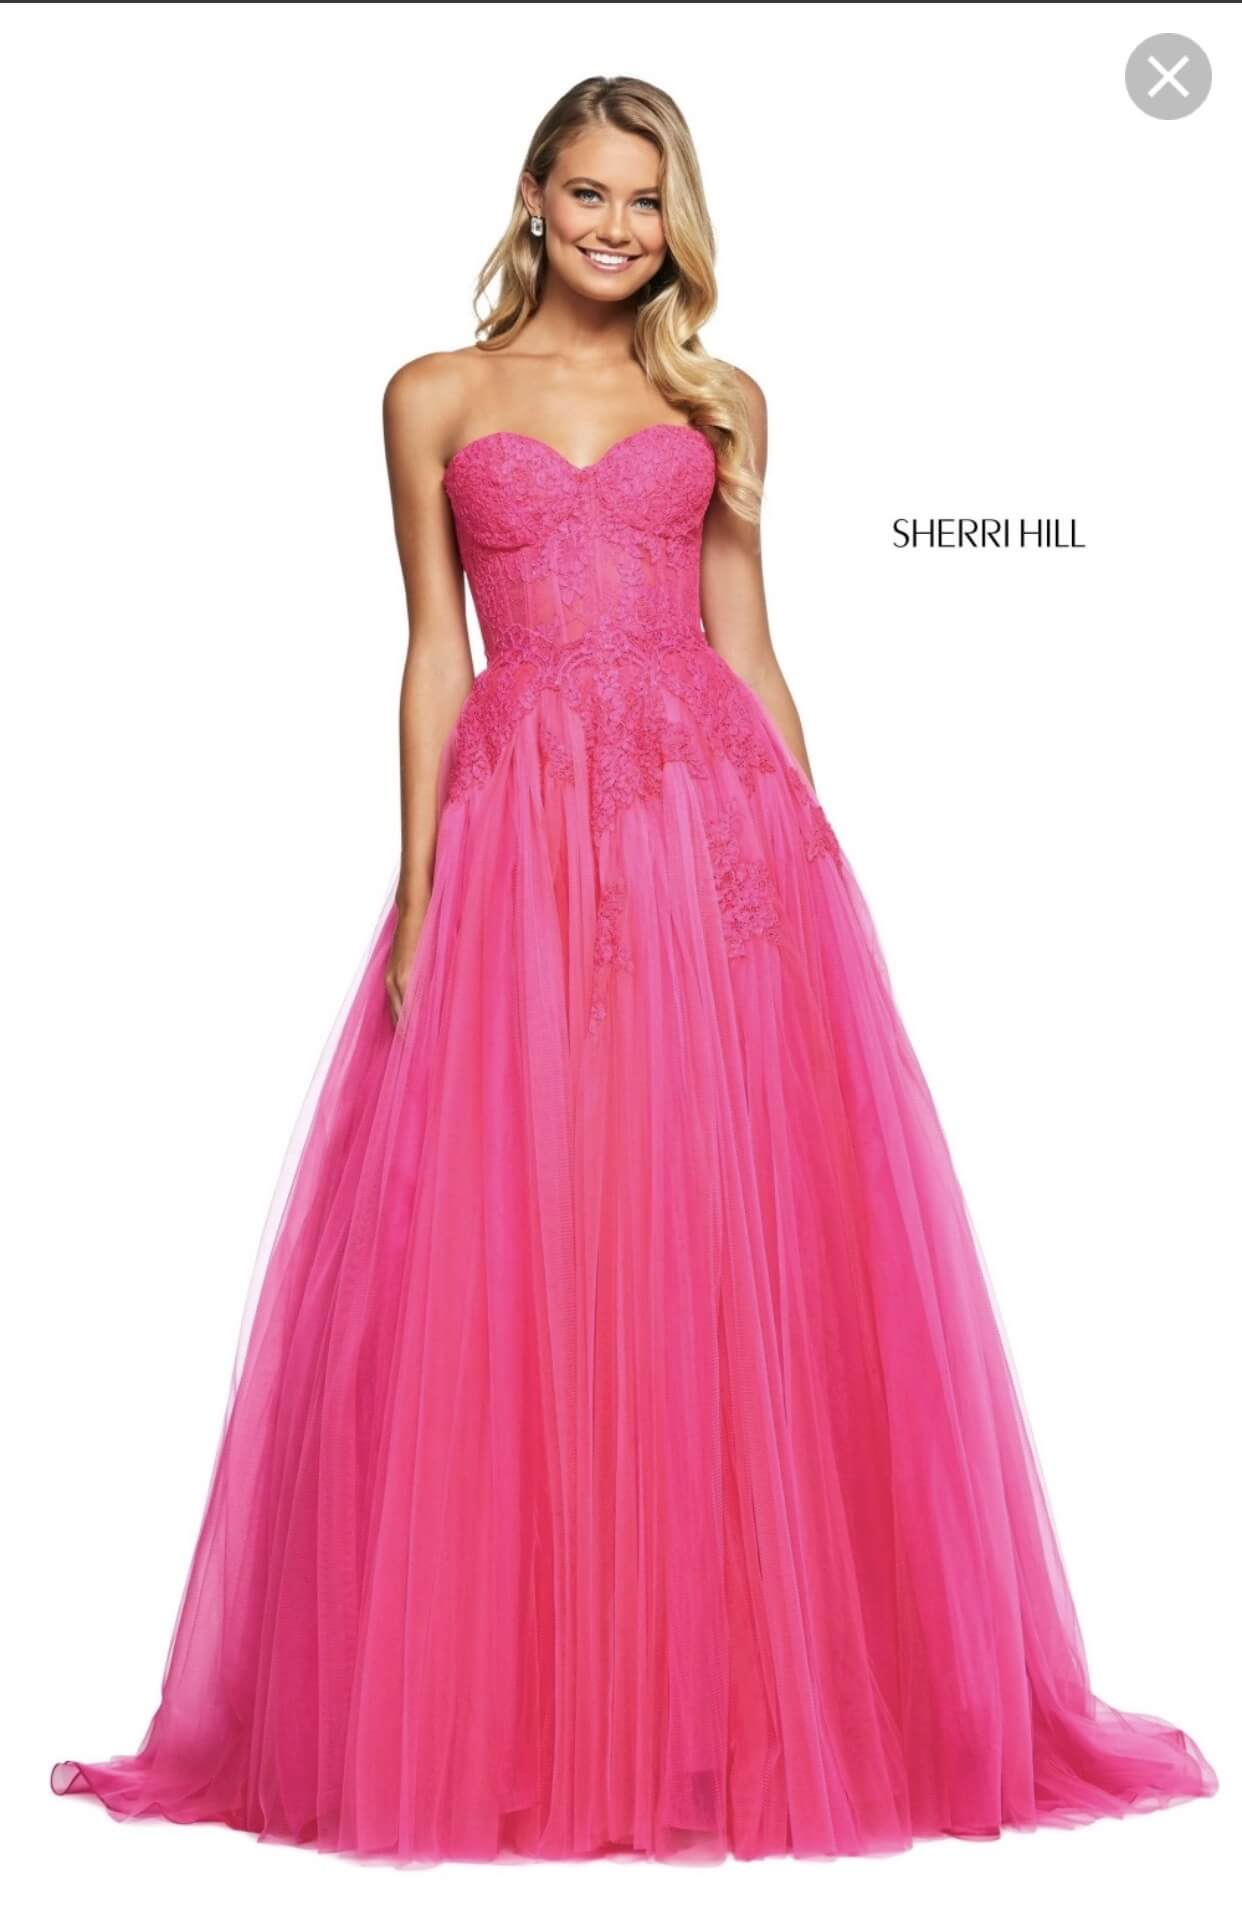 Sherri Hill Hot Pink Size 4 Strapless Train Dress on Queenly